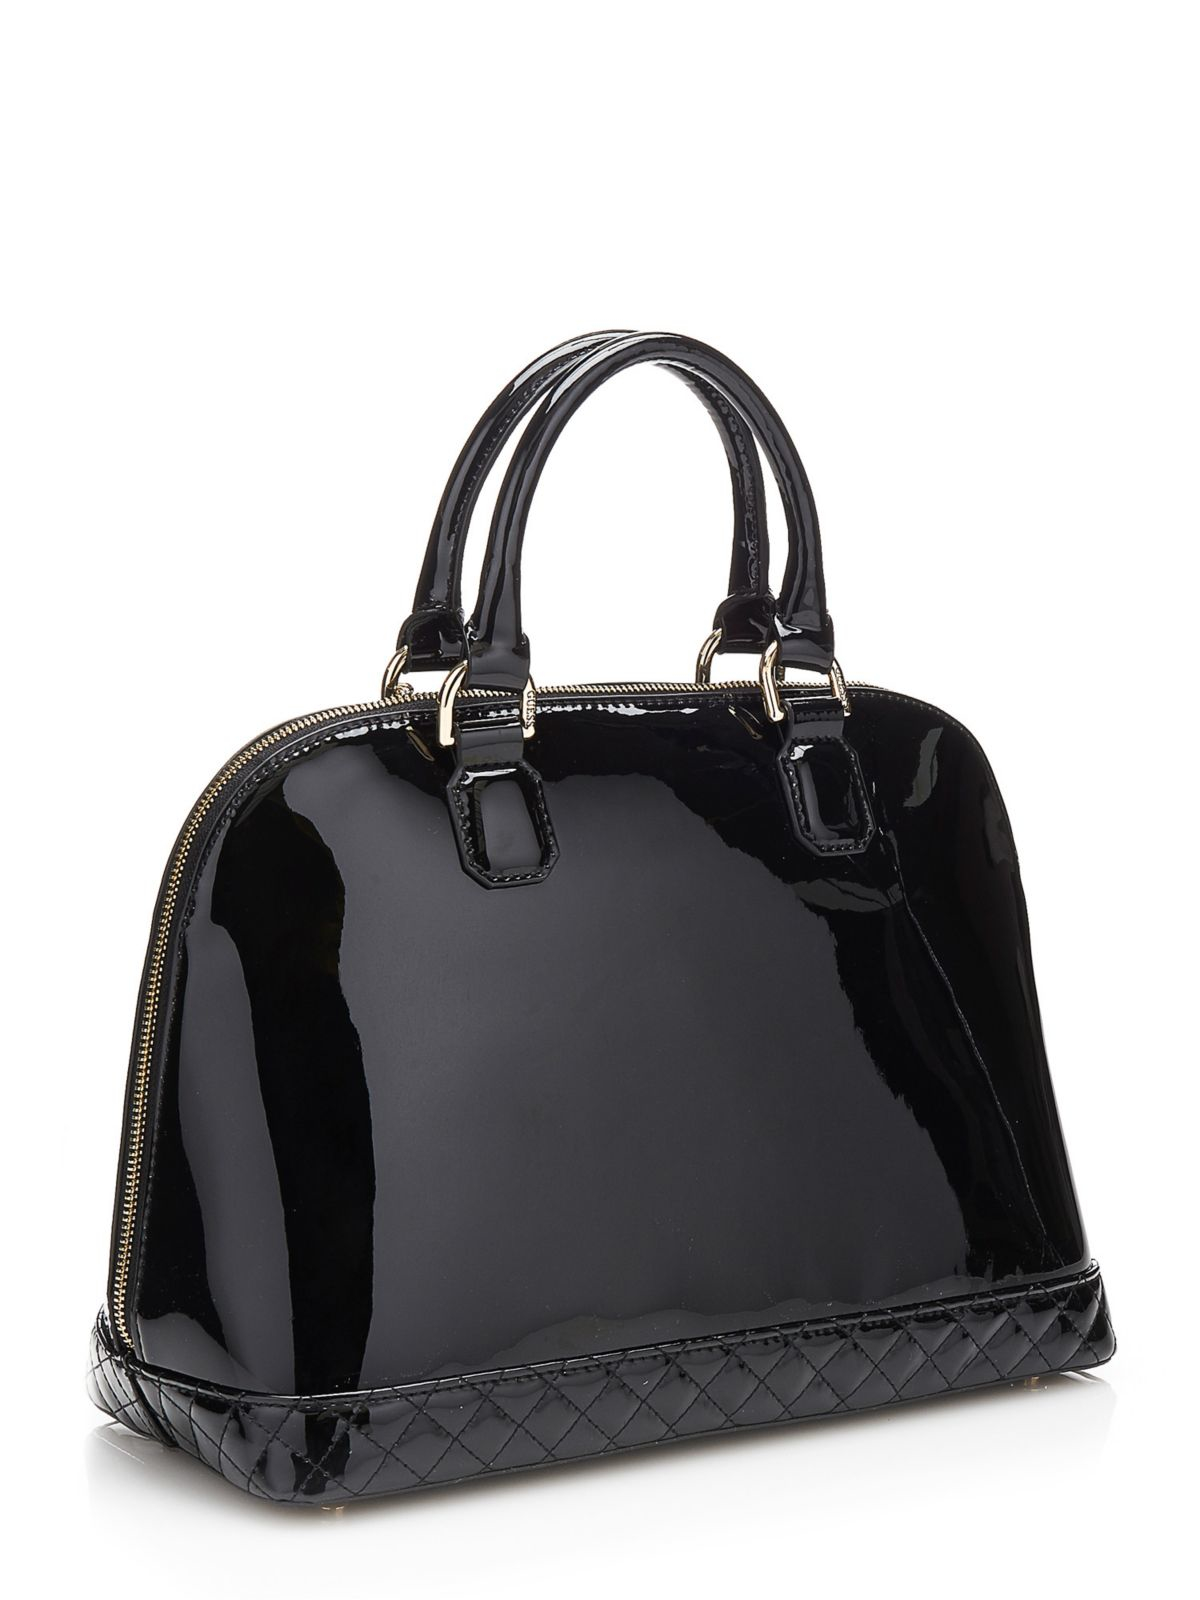 Guess Amy Shine Patent Look Satchel Bag In Black Lyst